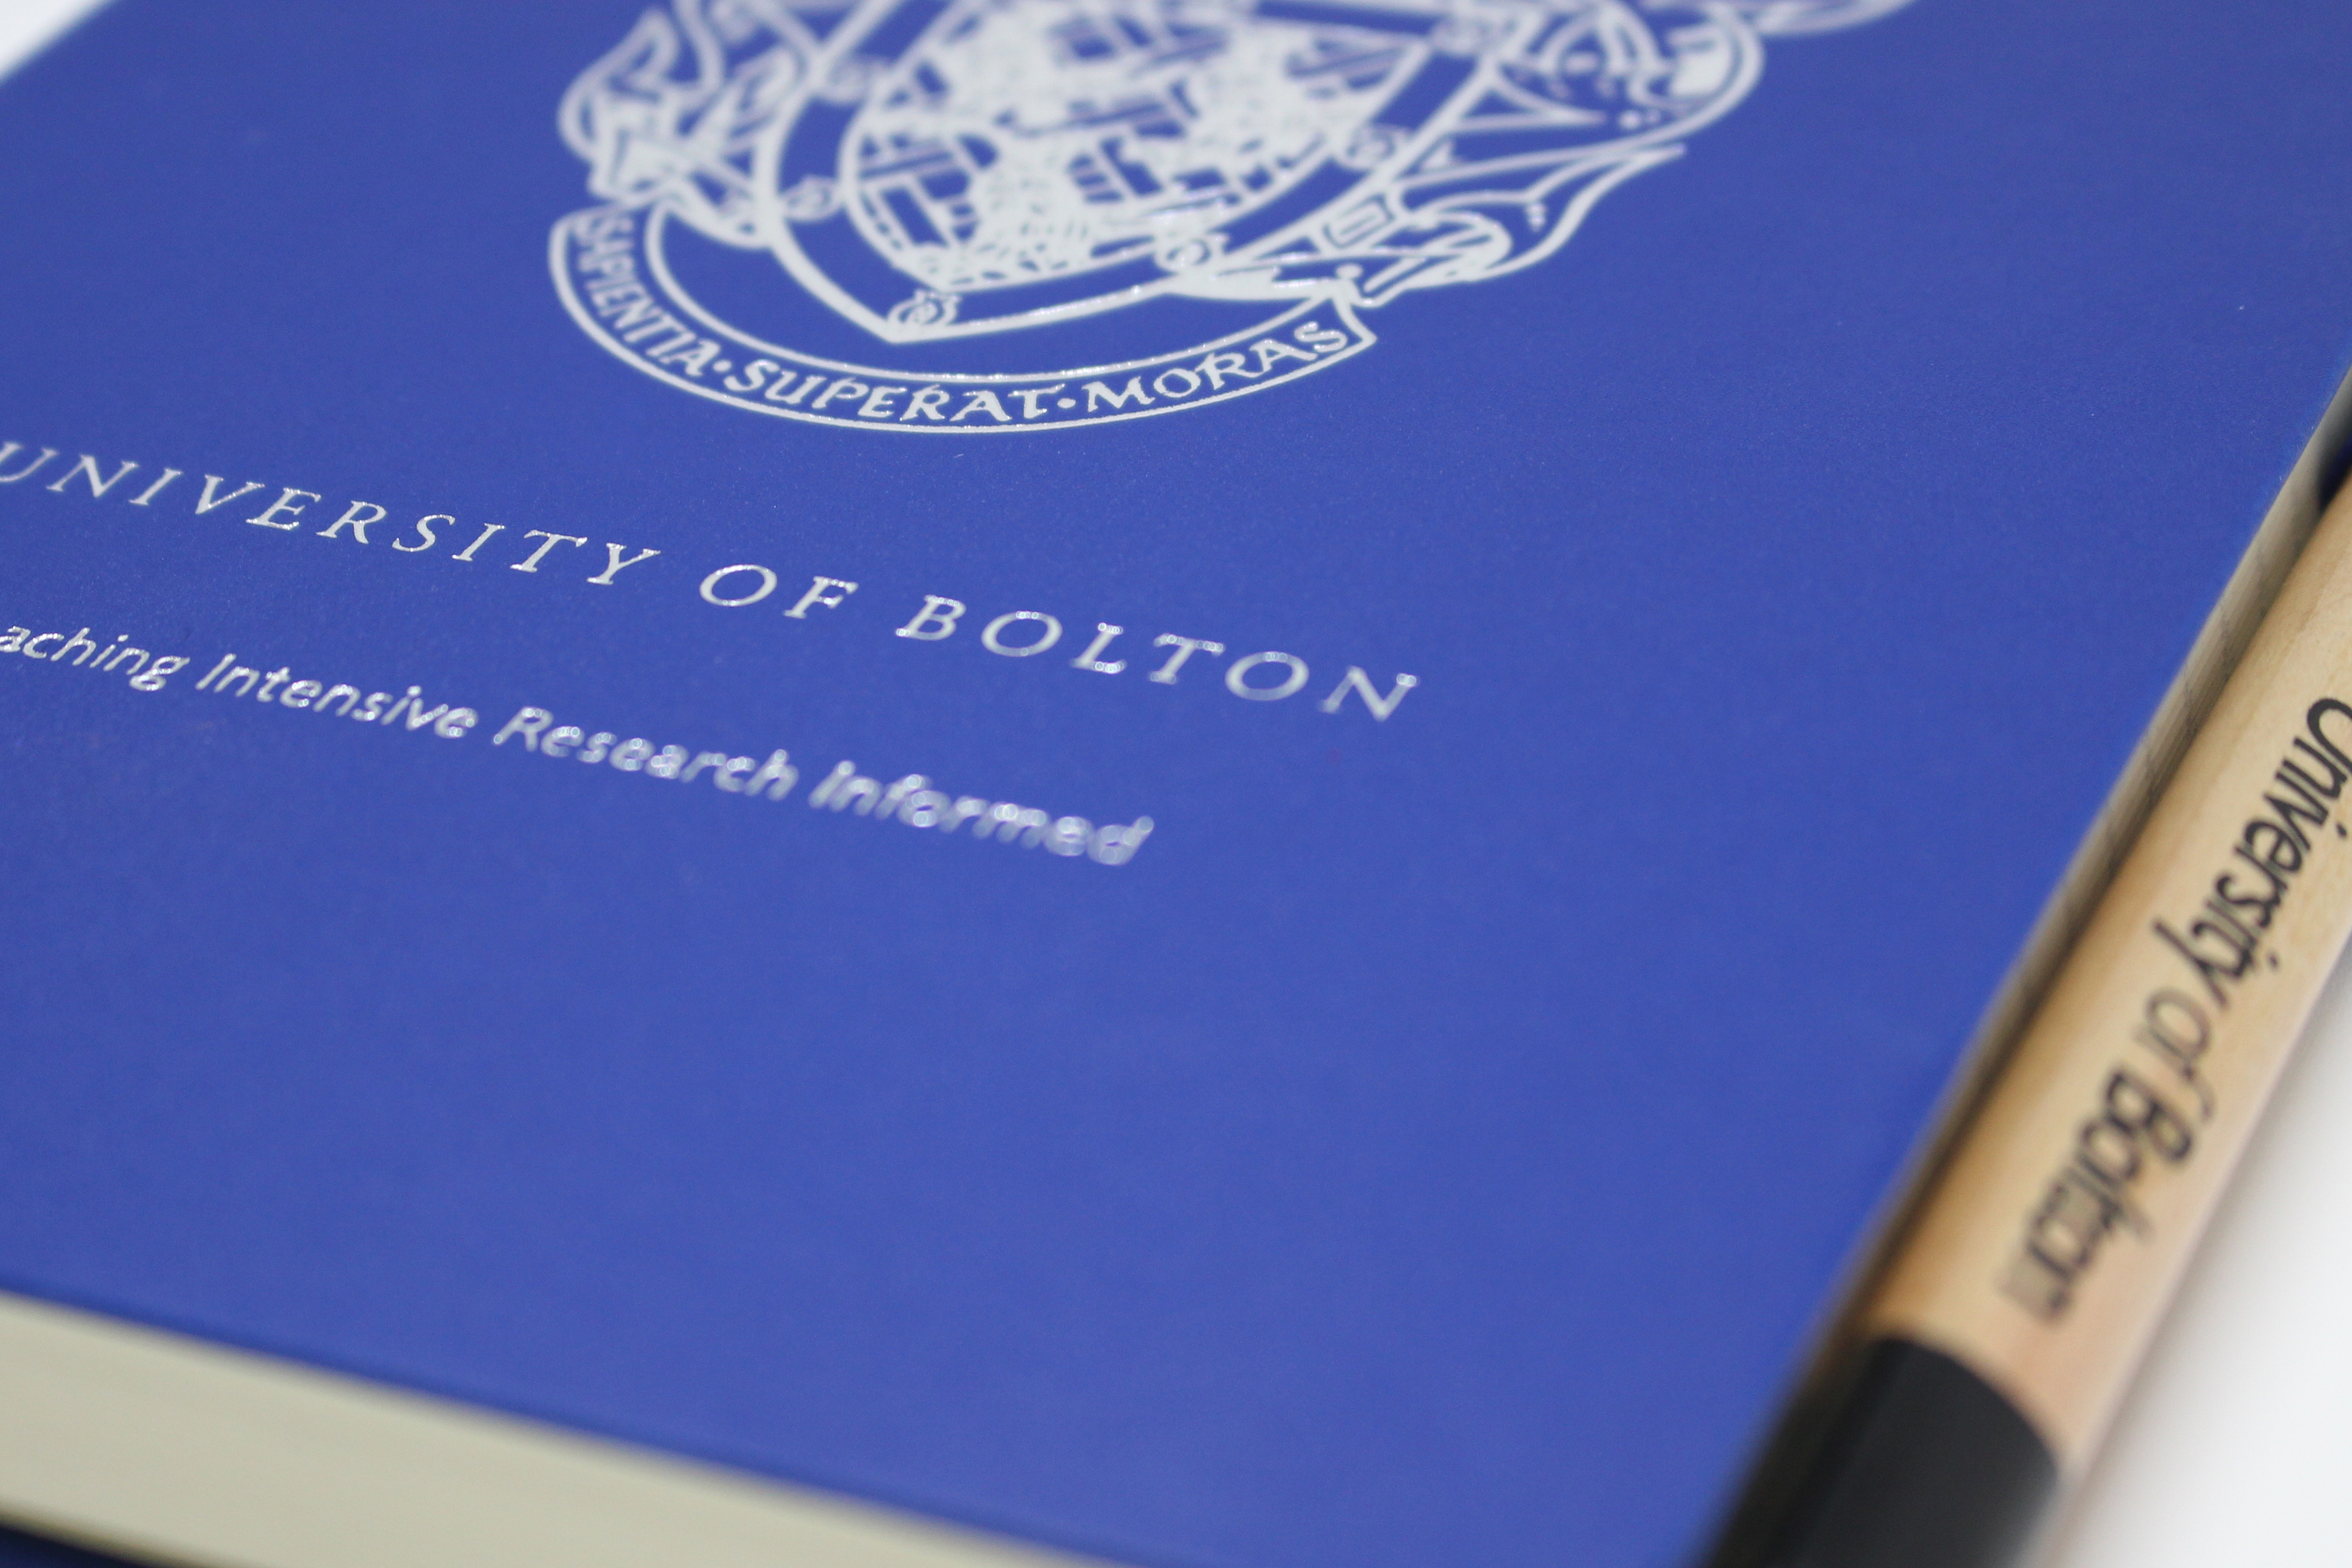 Bolton University Branded Foil Blocked Notebook